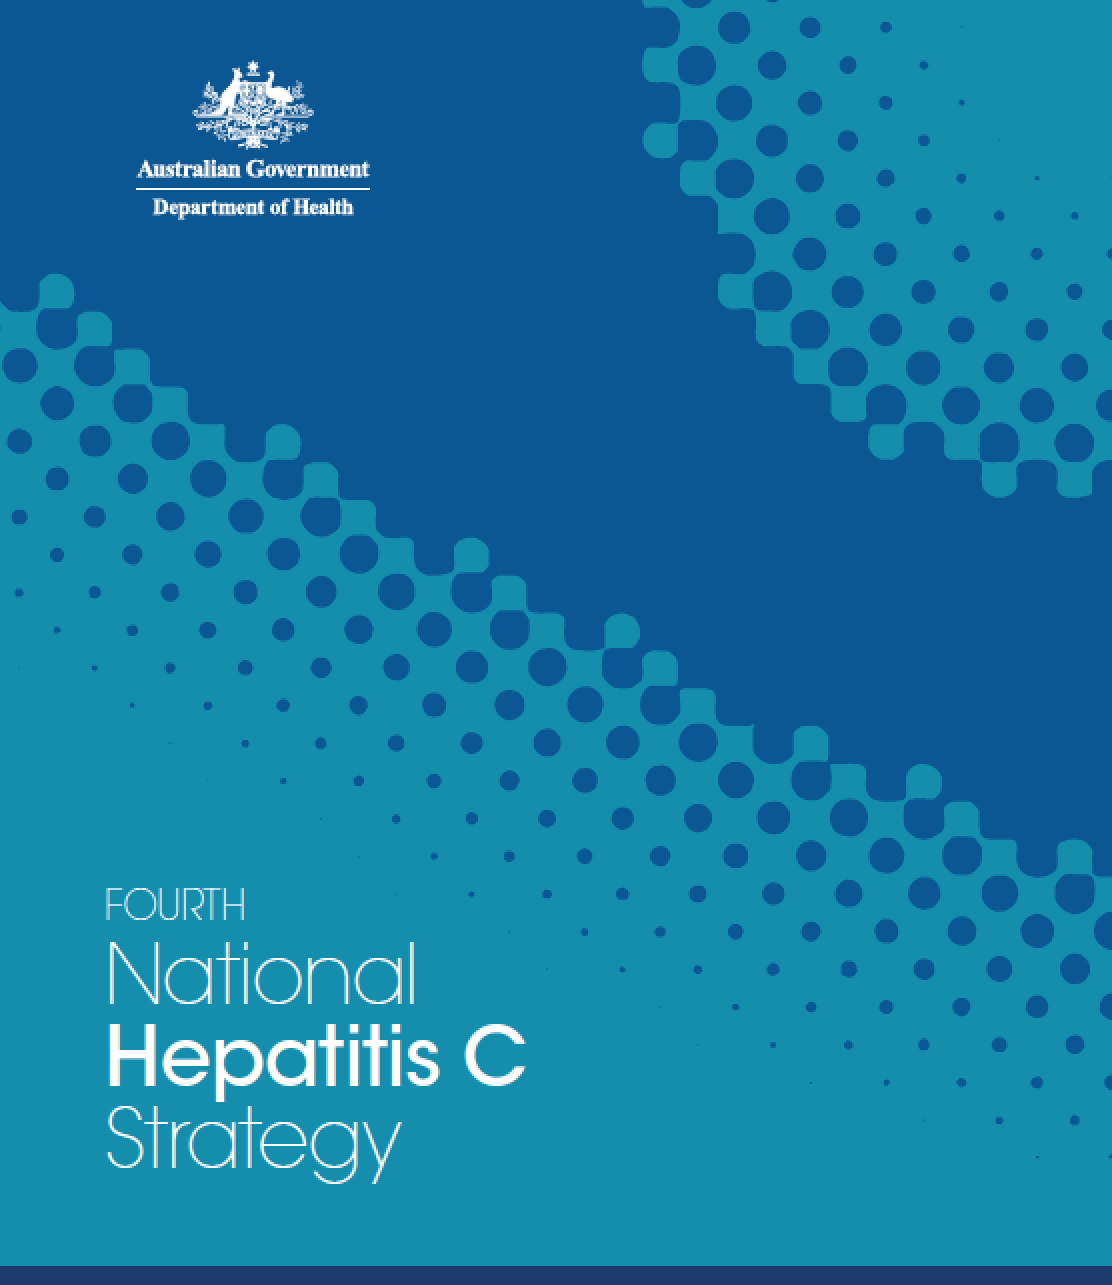 Fourth National Hepatitis C Strategy 2014 - 2017   Download Now  (PDF 462Kb)